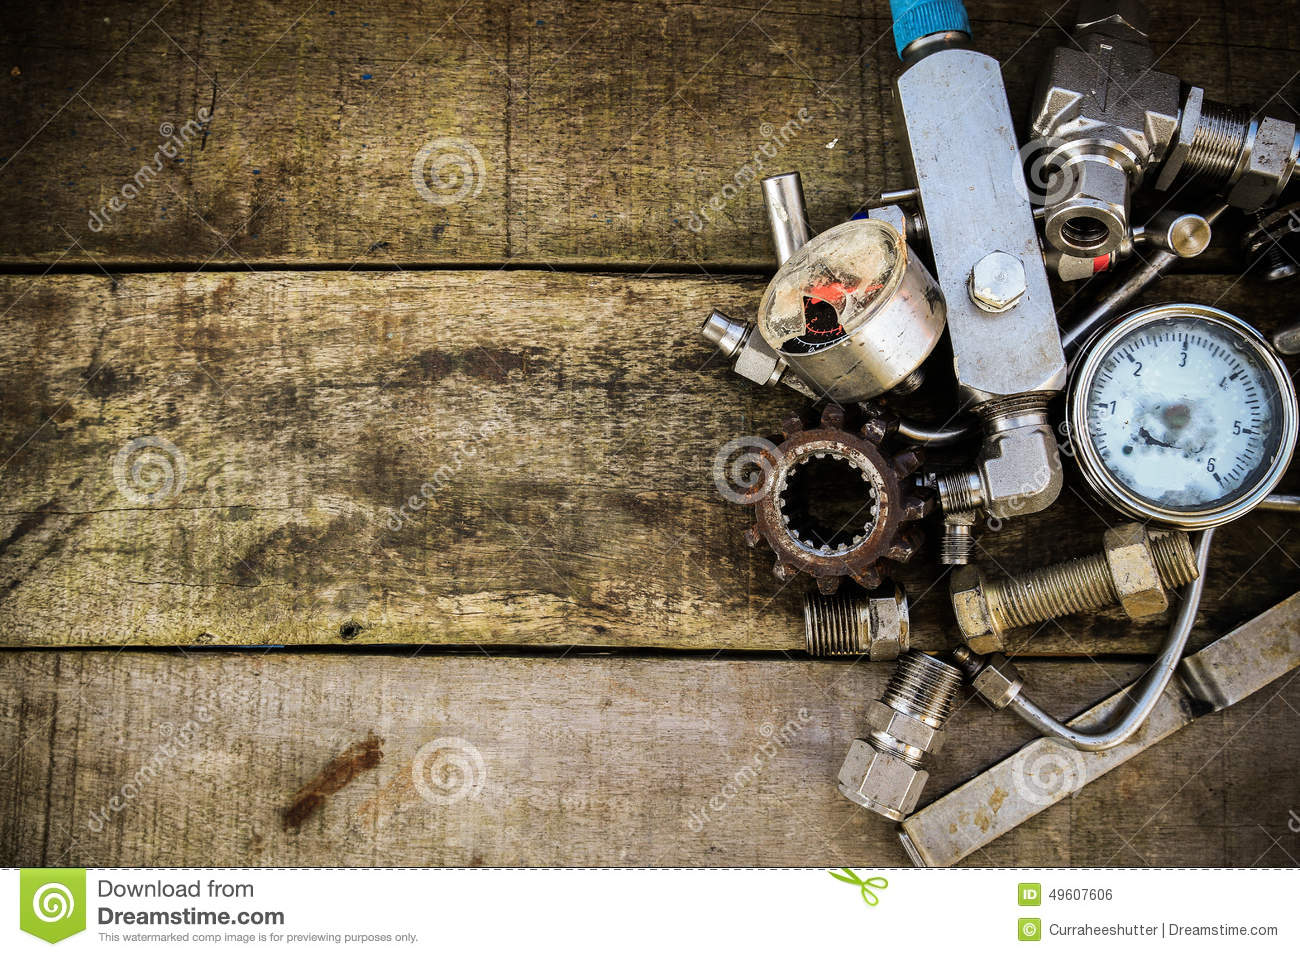 Hq Old Machinery Parts : Old machine parts in machinery shop on wooden background